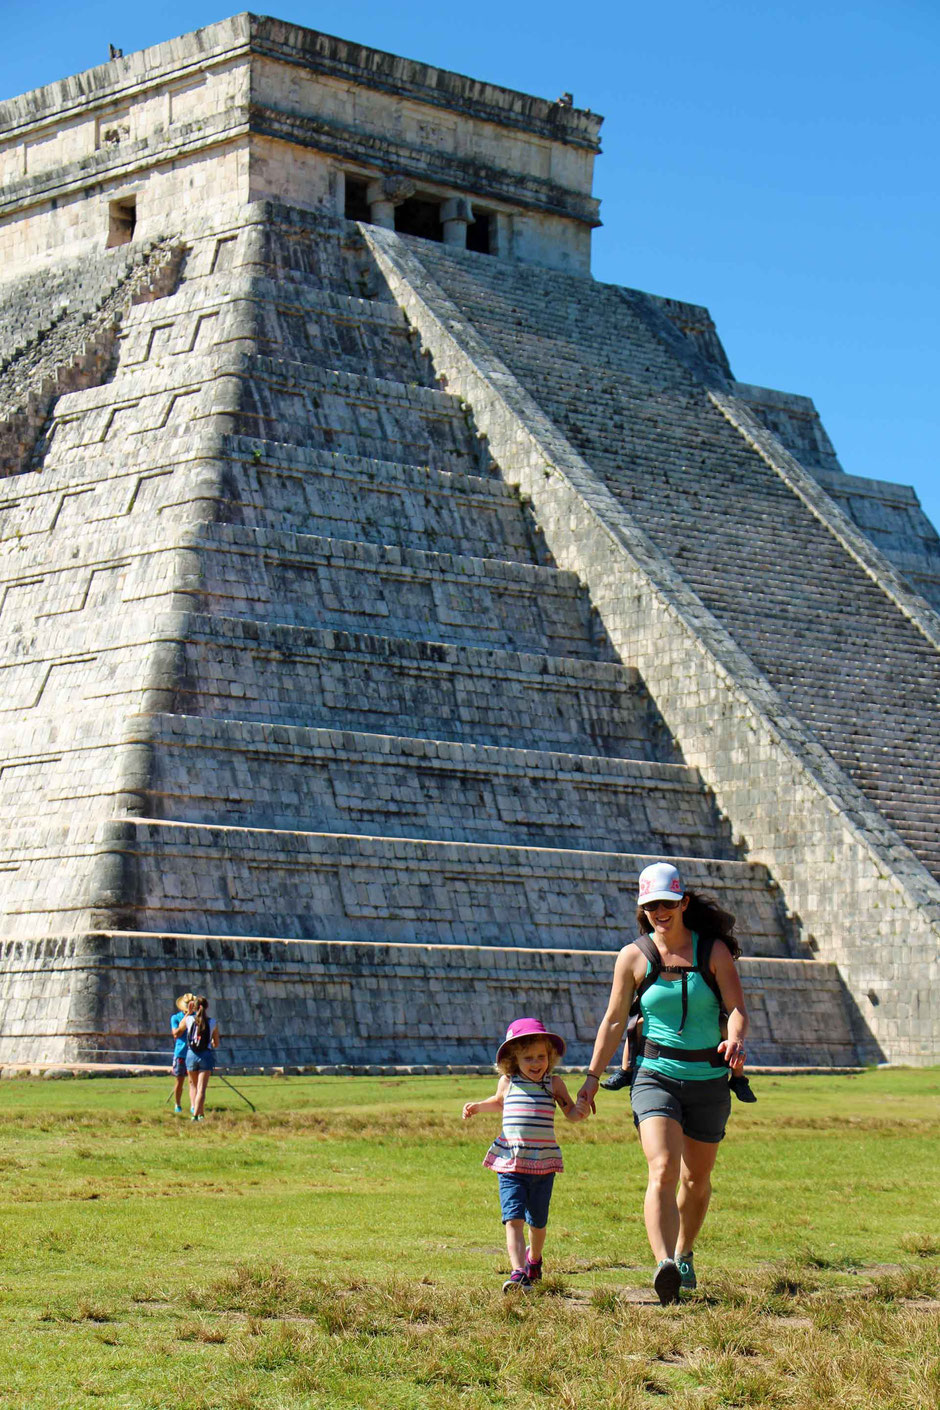 How to Easily Visit the Best Mayan Ruins - Arrive Early at Chichen Itza to Avoid the Crowds (El Castillo)